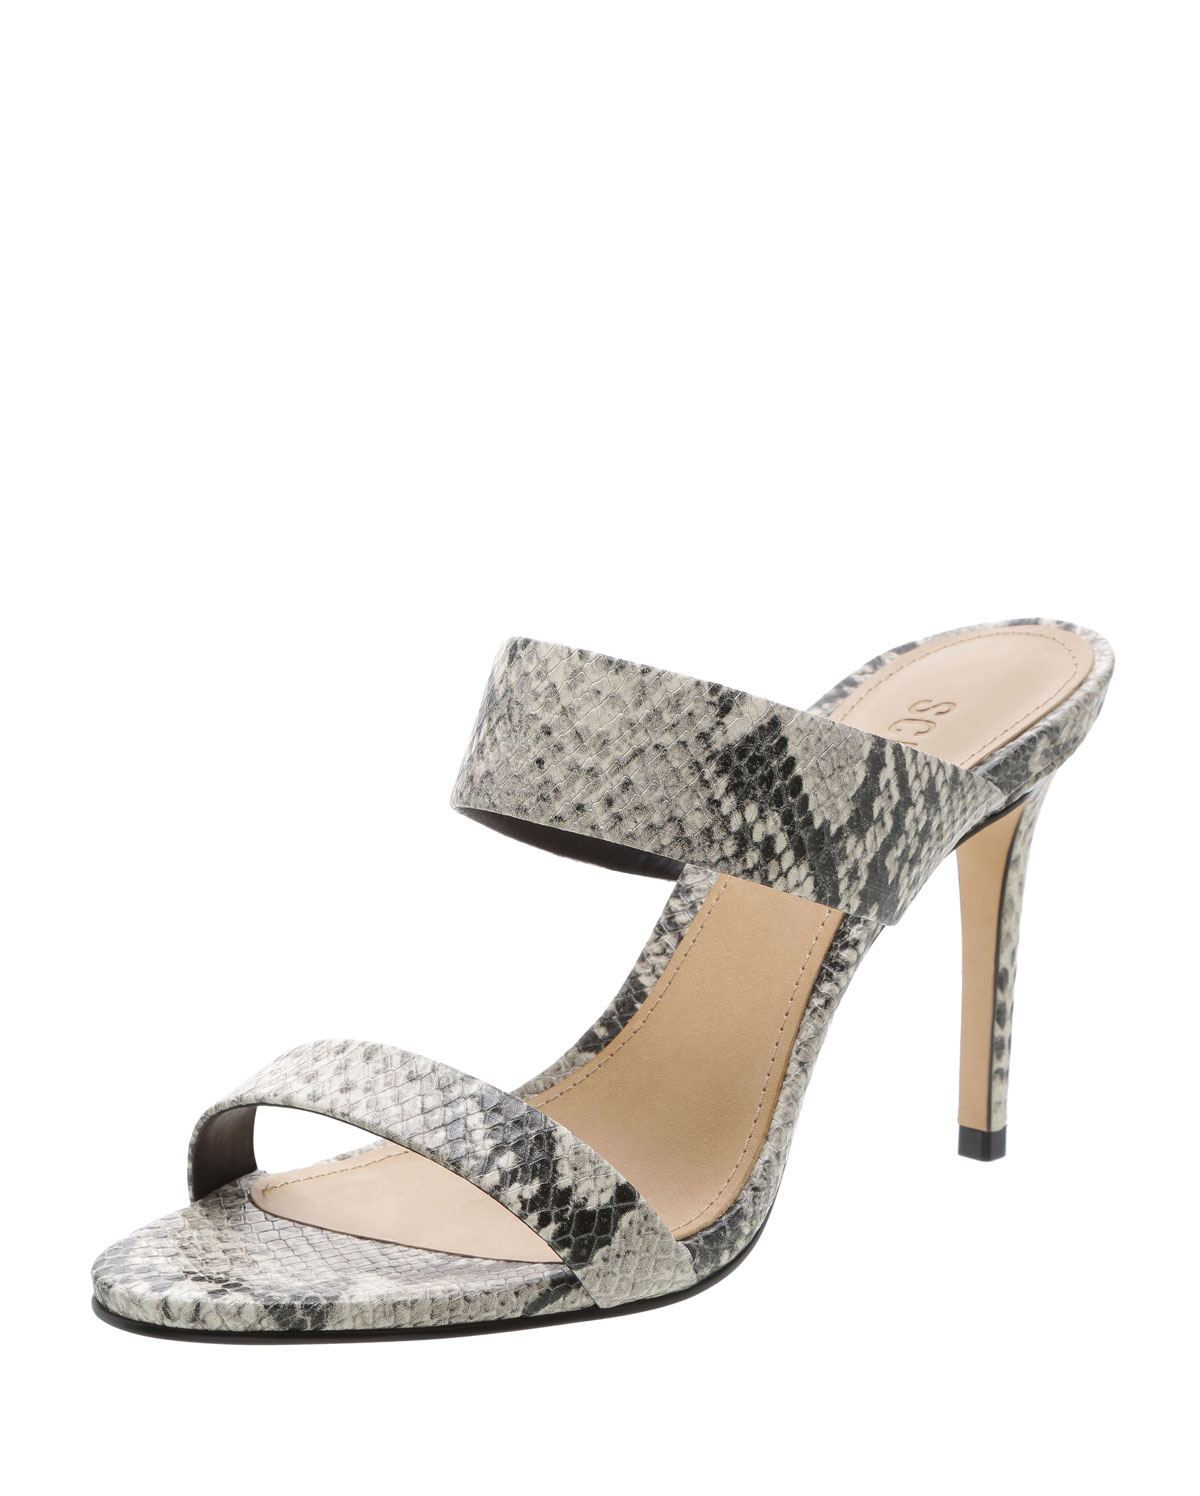 a2f807a53731 Schutz Leia Snake-Embossed Strappy Slide Sandals